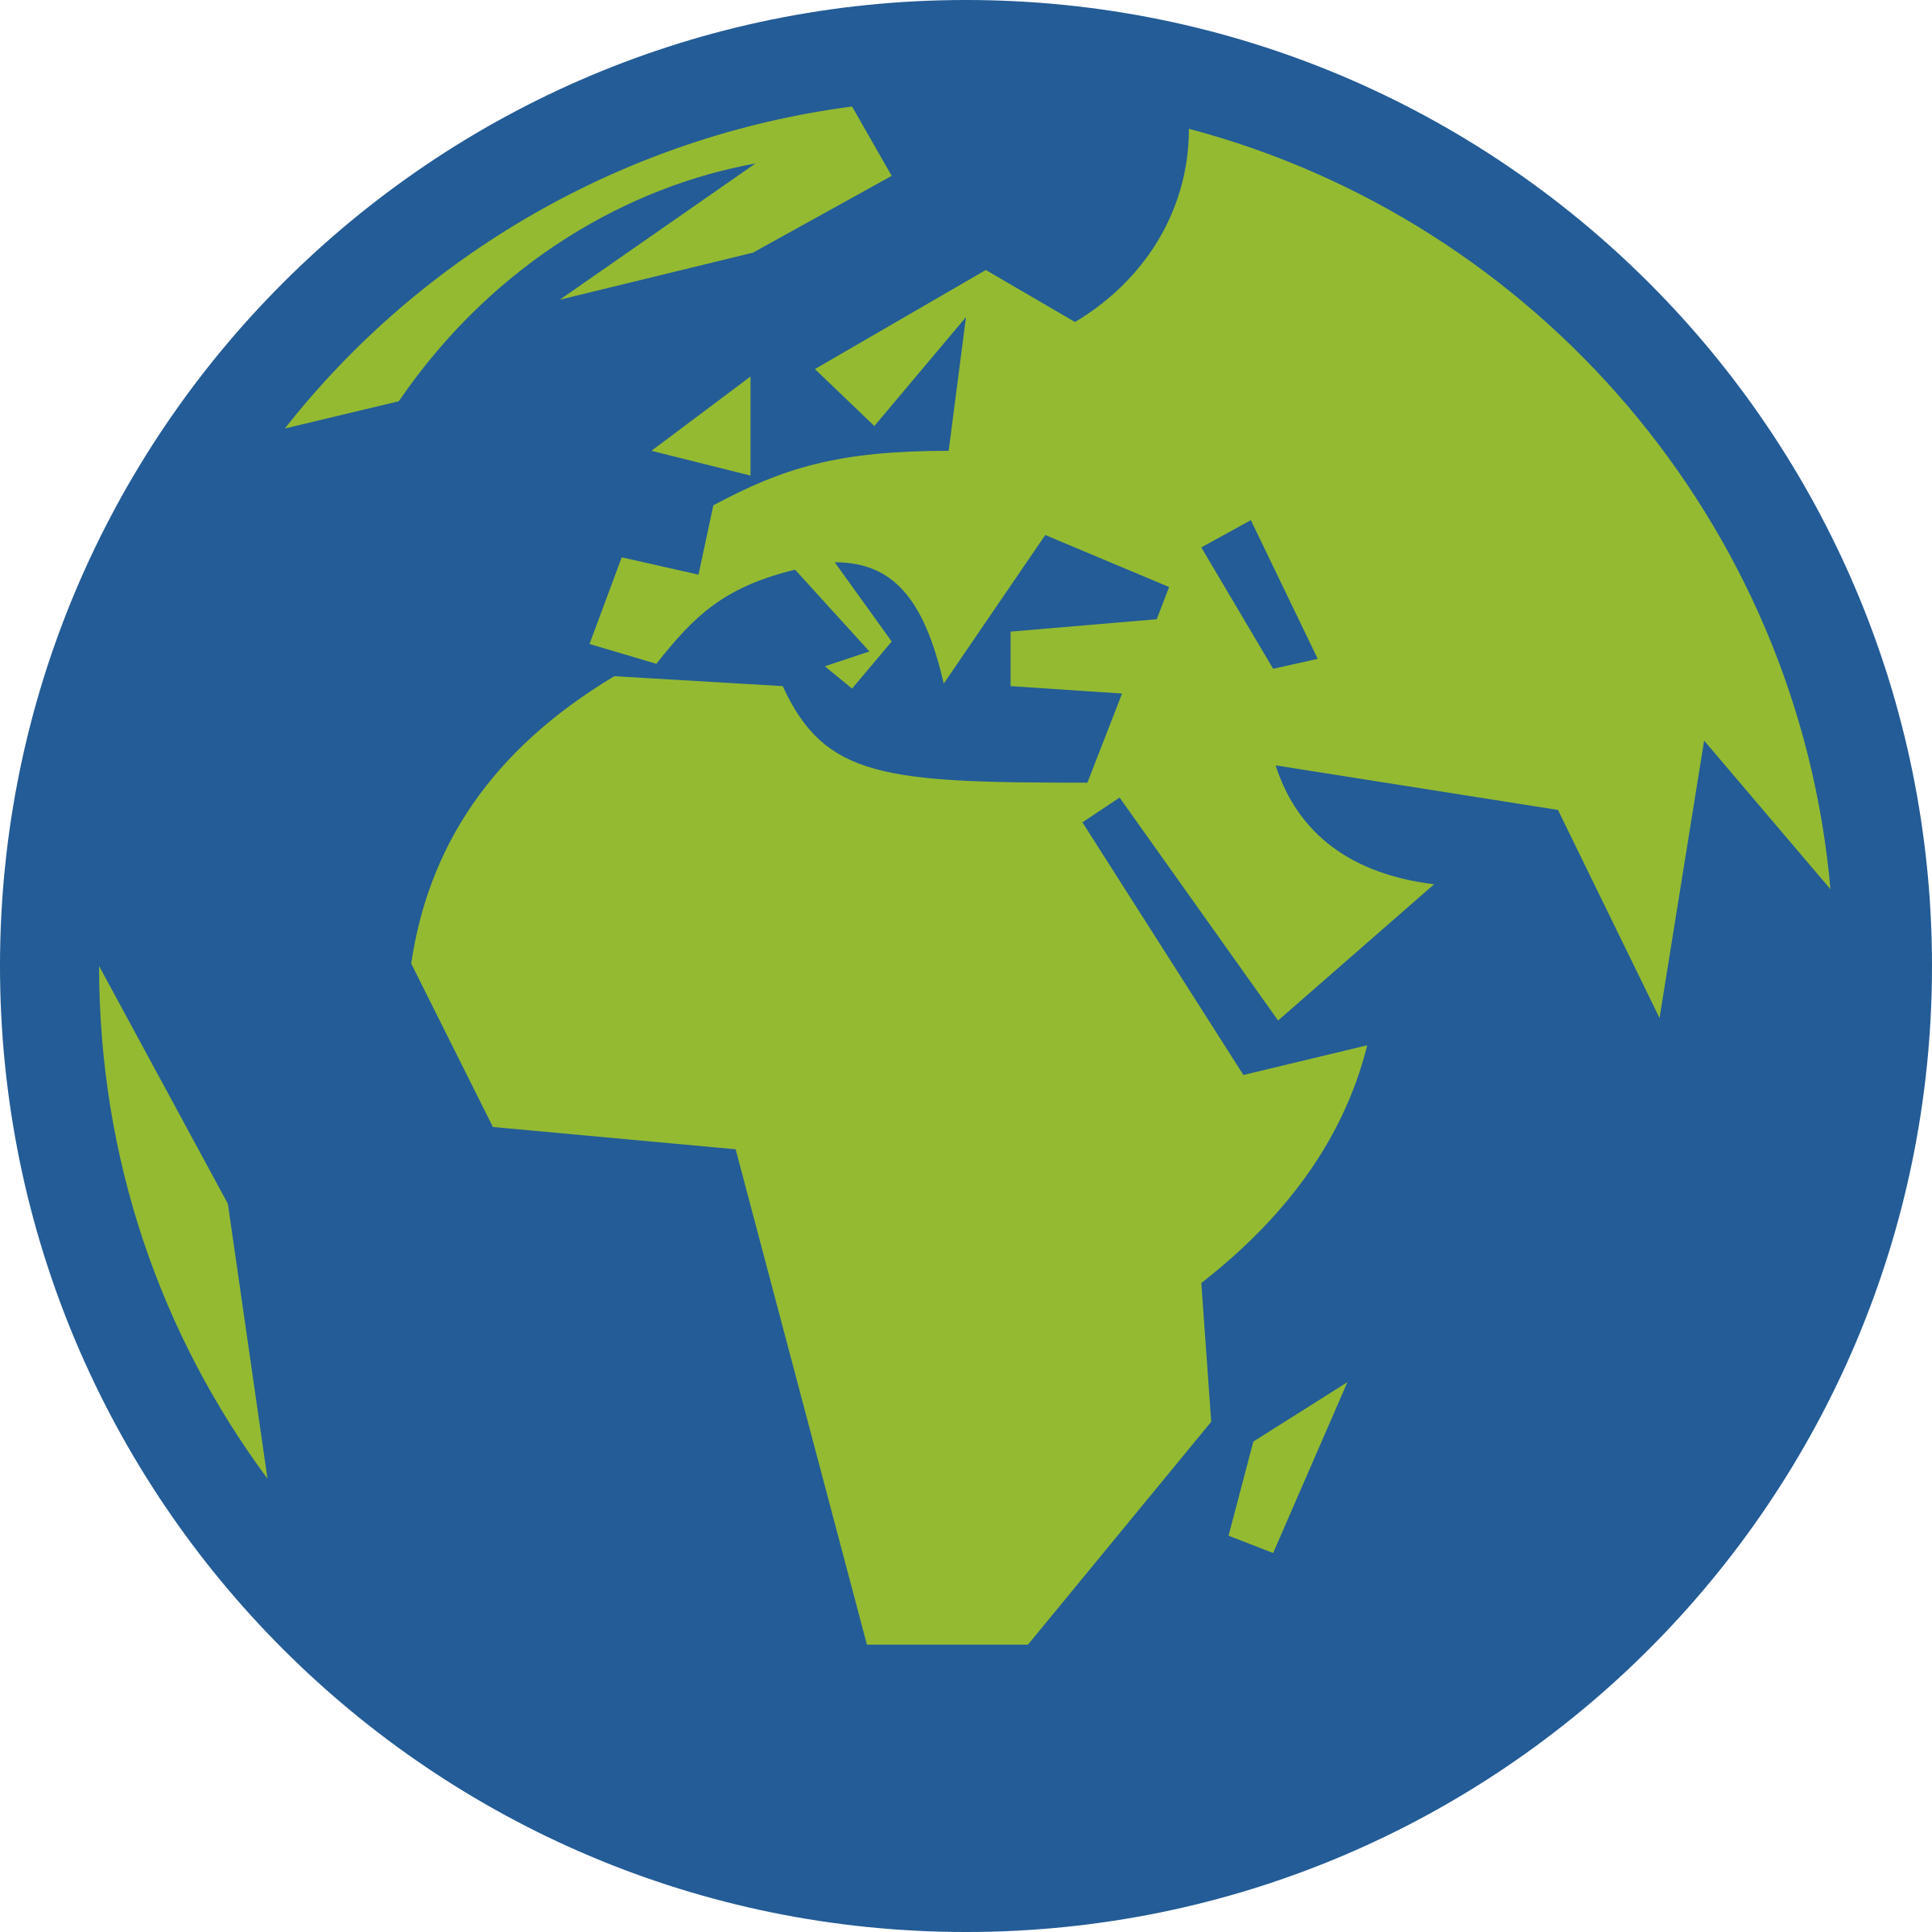 Globe Icon Facing Europe And Africa on Green Environmental Clip Art